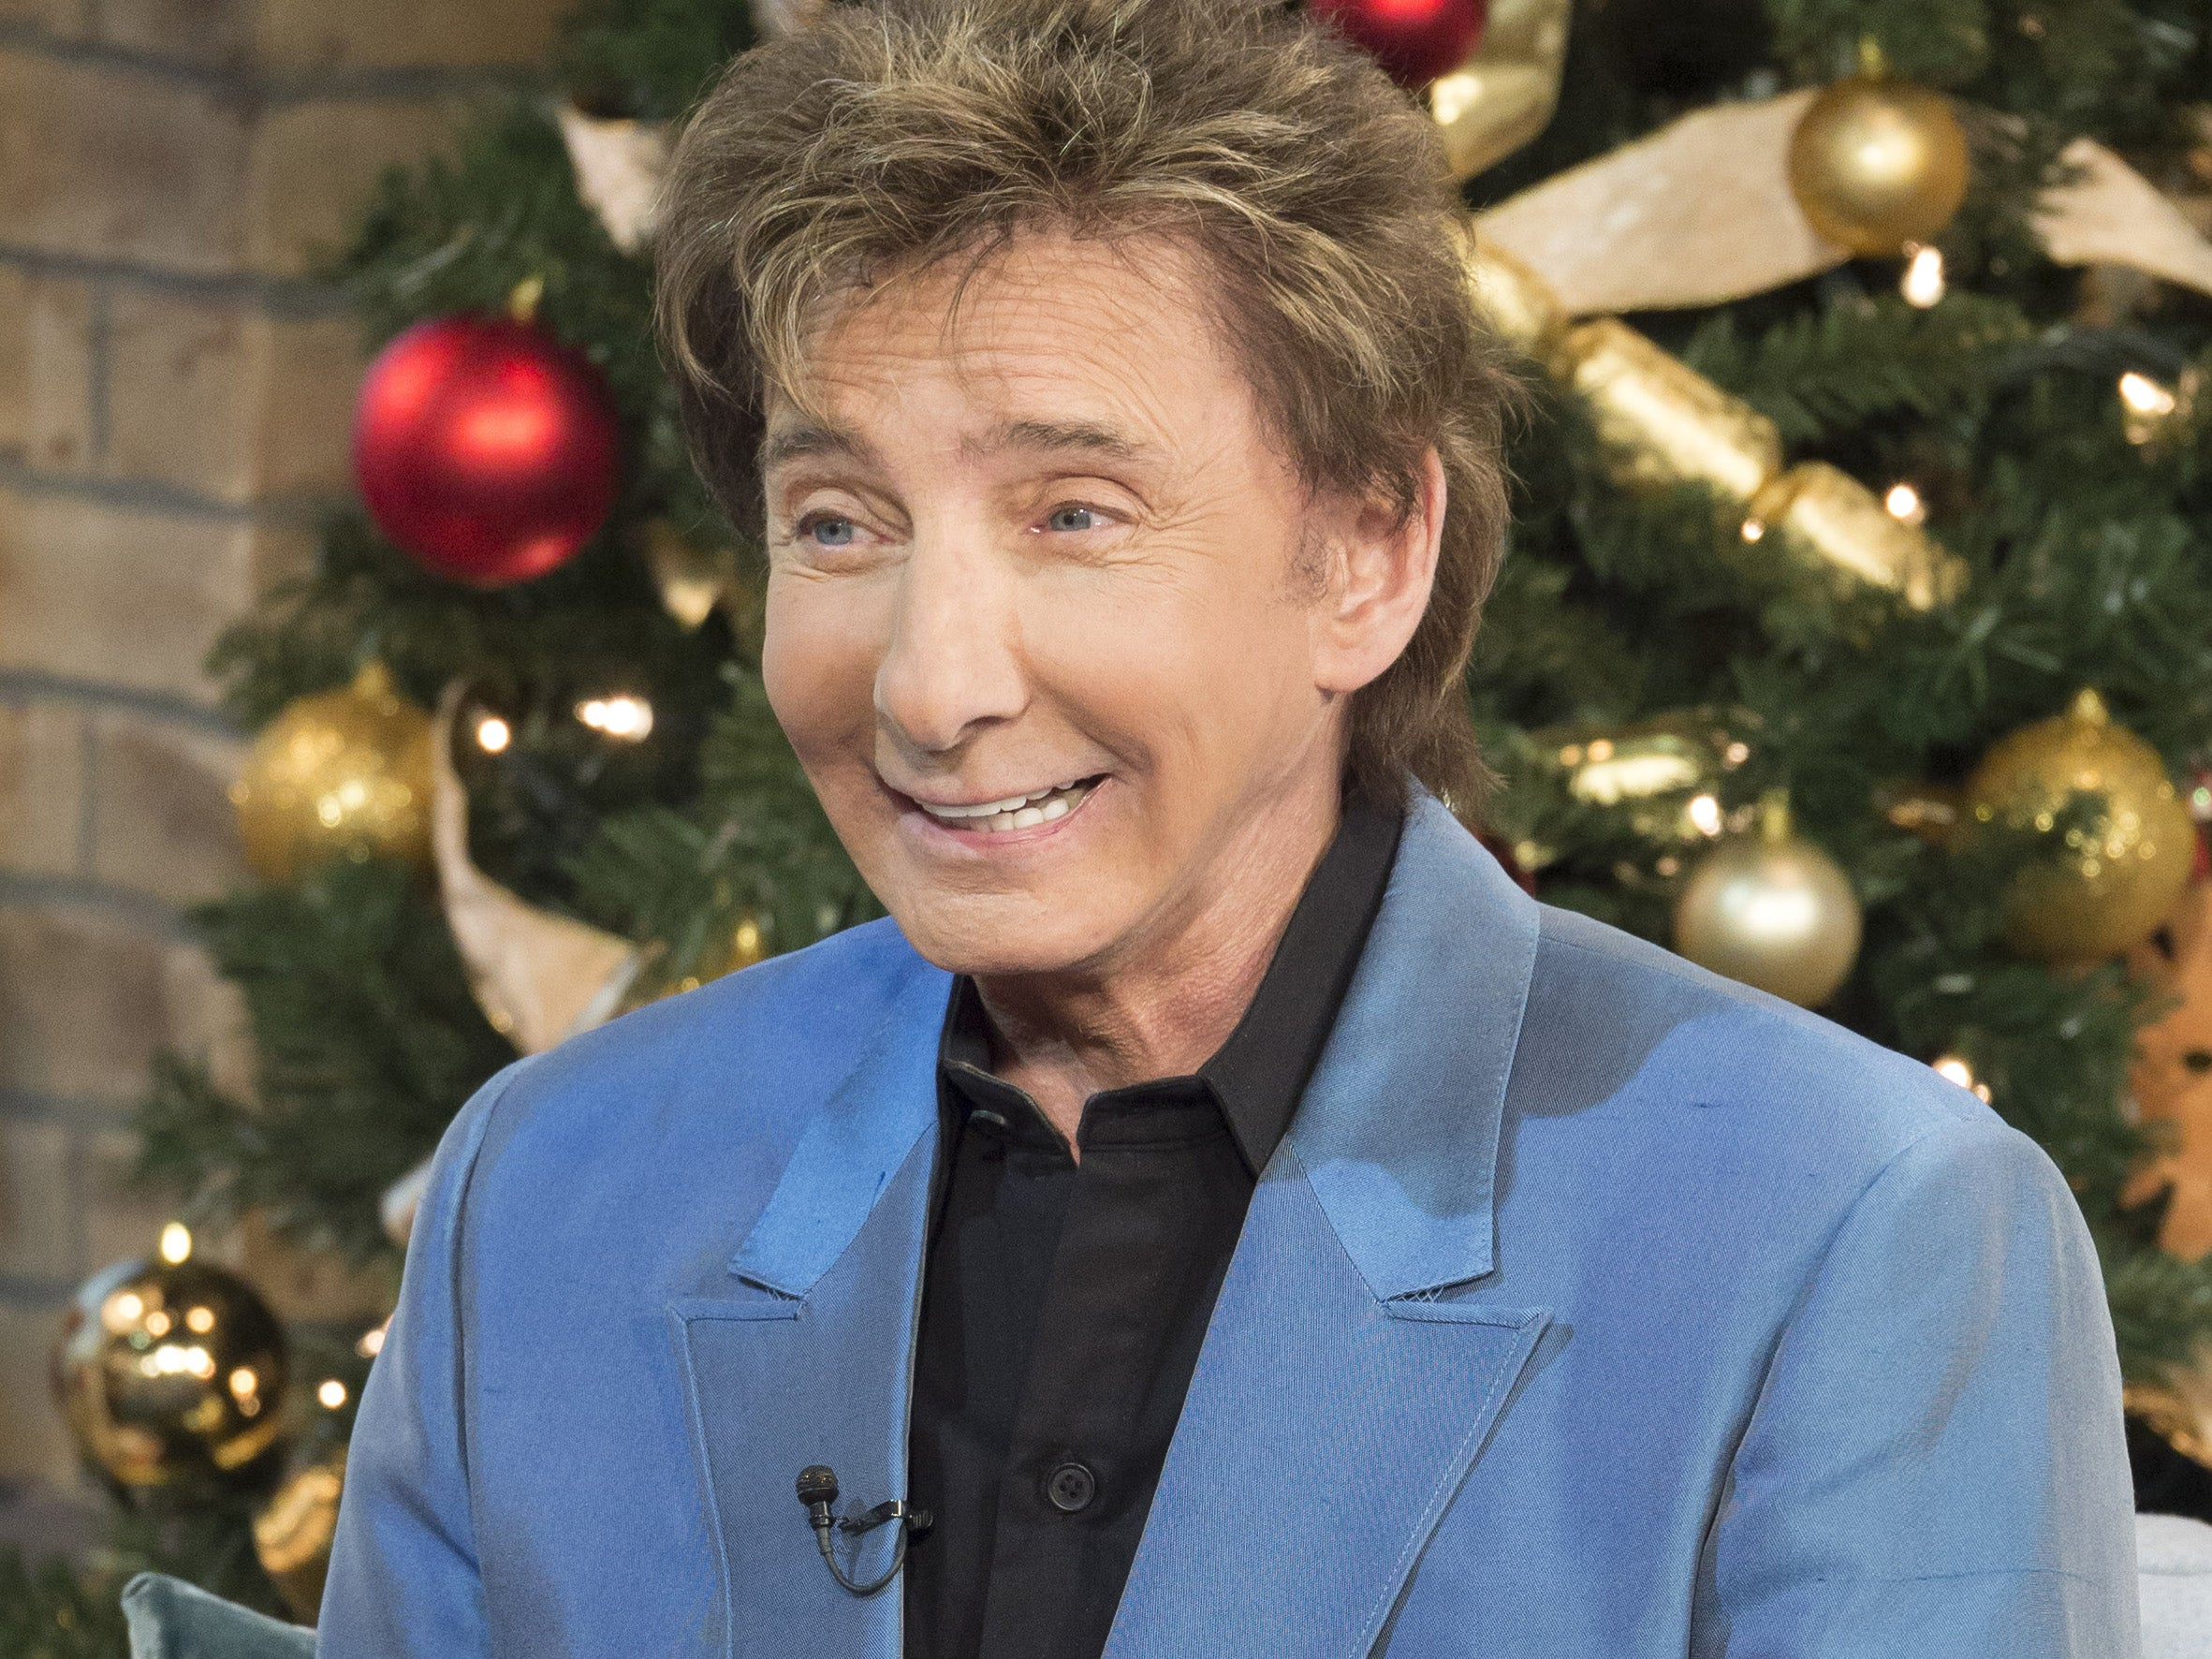 Barry manilow explains why he hid his sexuality for decades